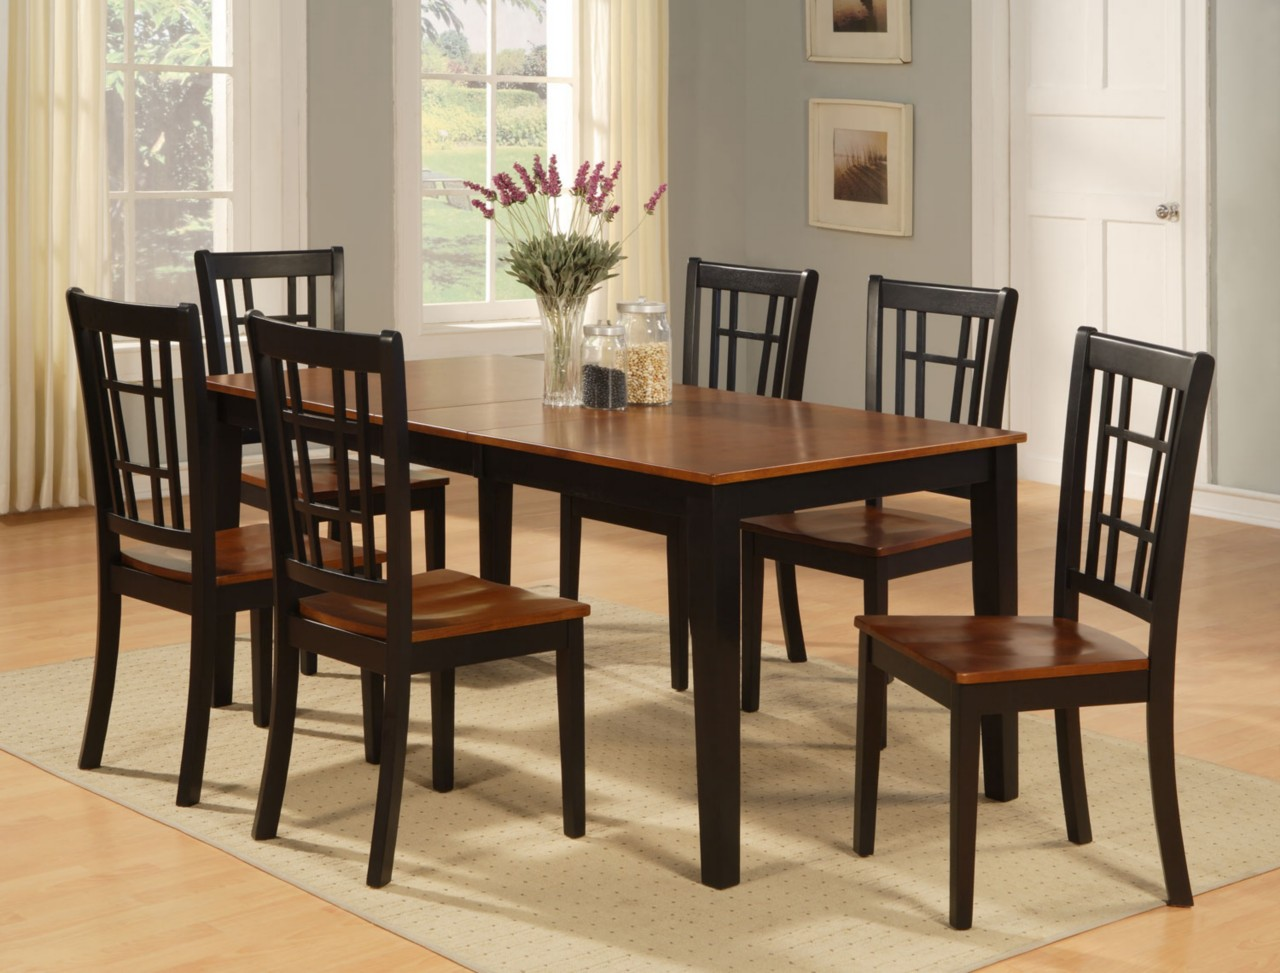 kitchen table and chairs contemporary kitchen tables and chairs contemporary kitchen contemporary kitchen  table and chairs DGMSXVD